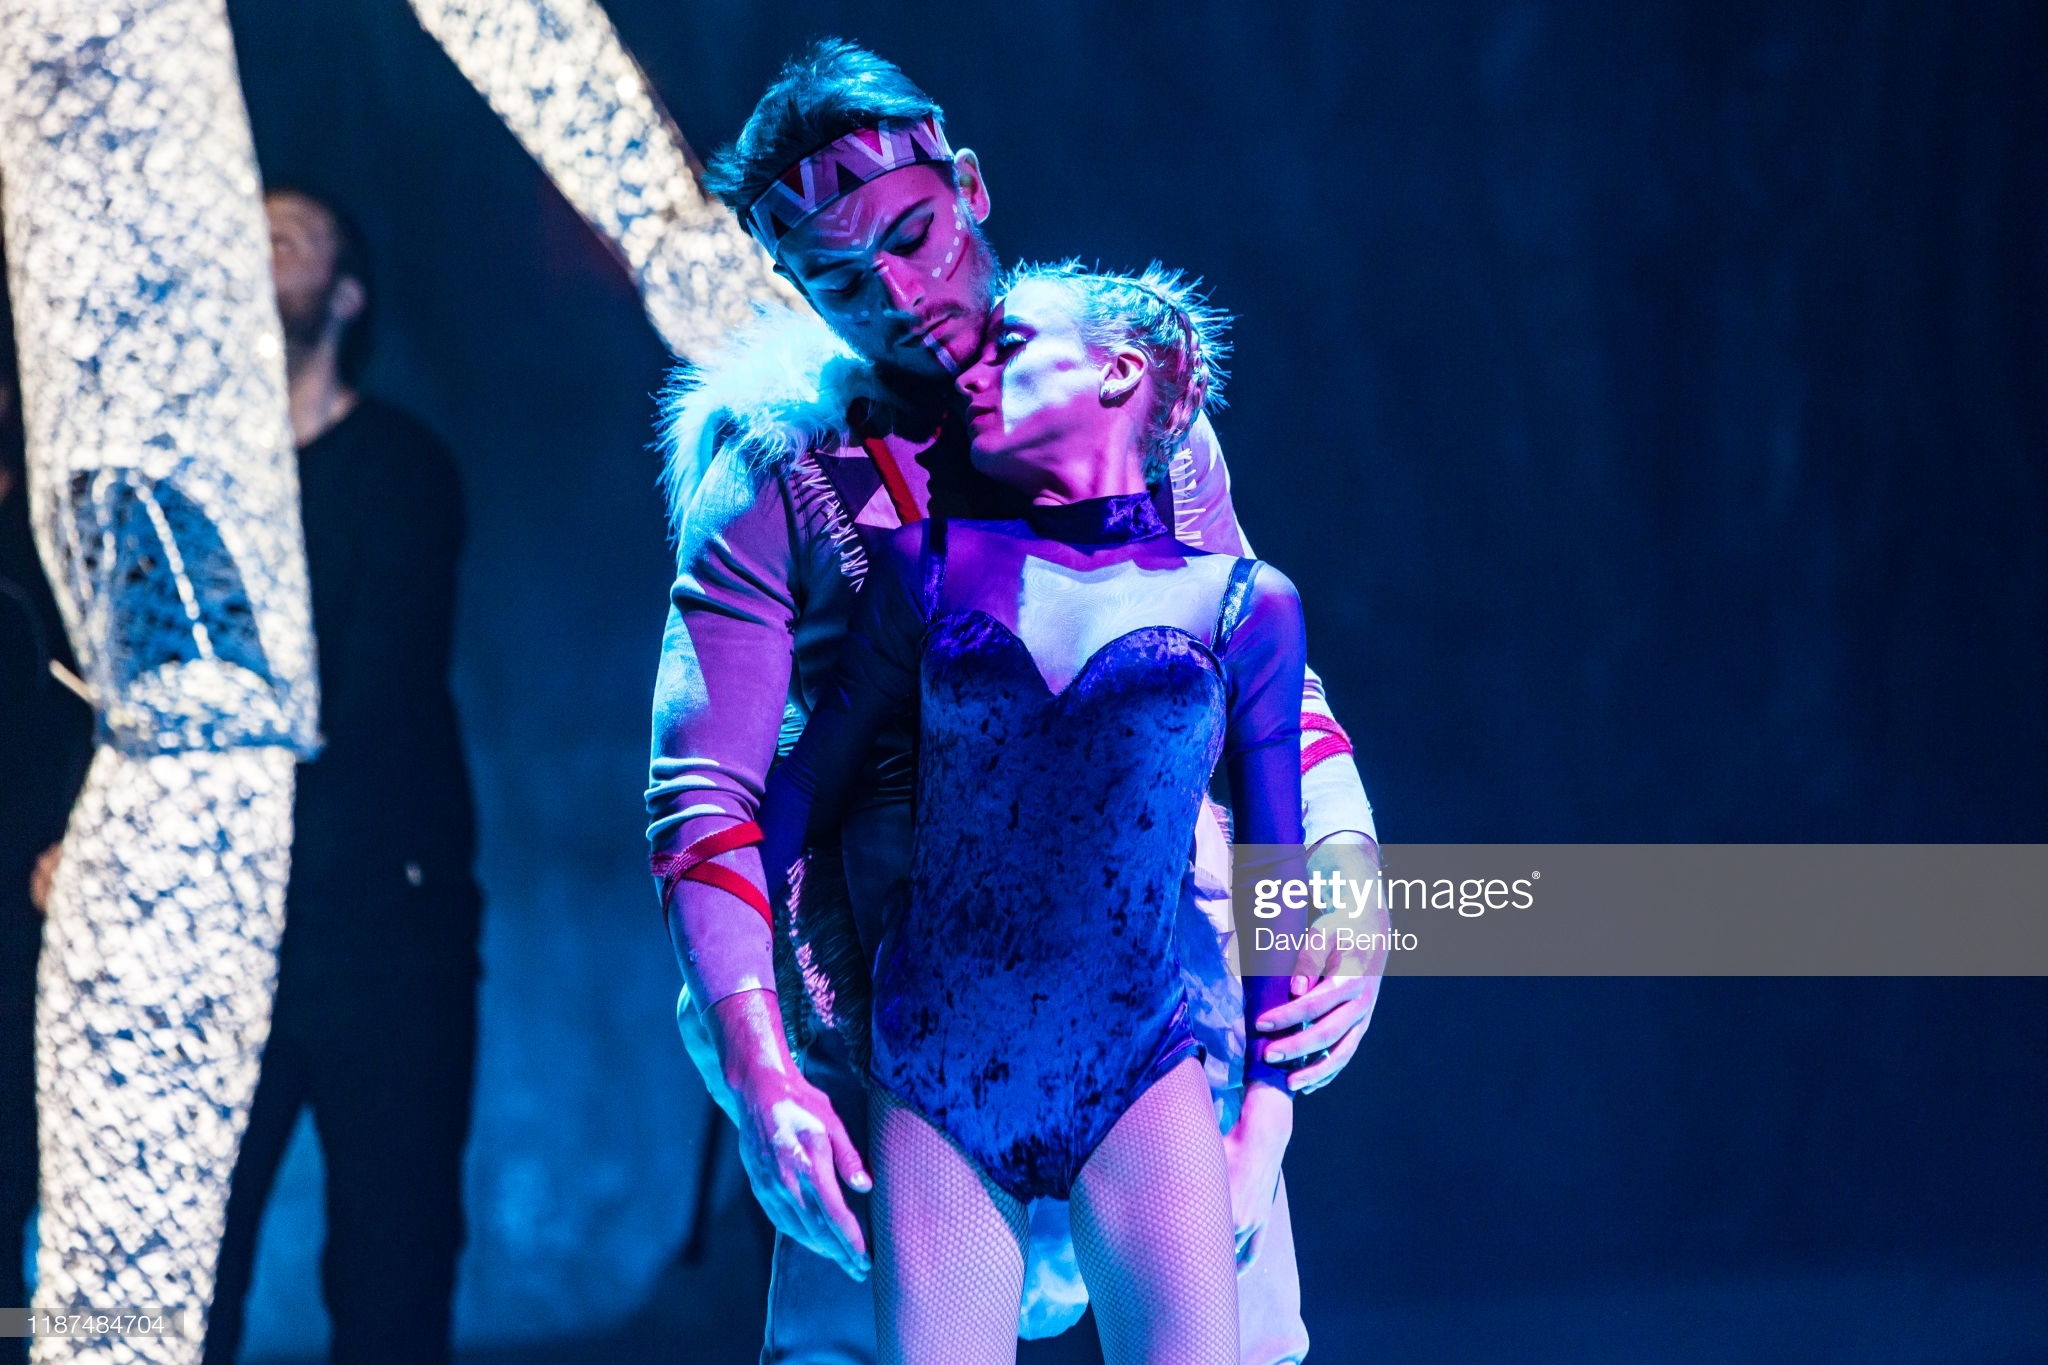 gettyimages-1187484704-2048x2048